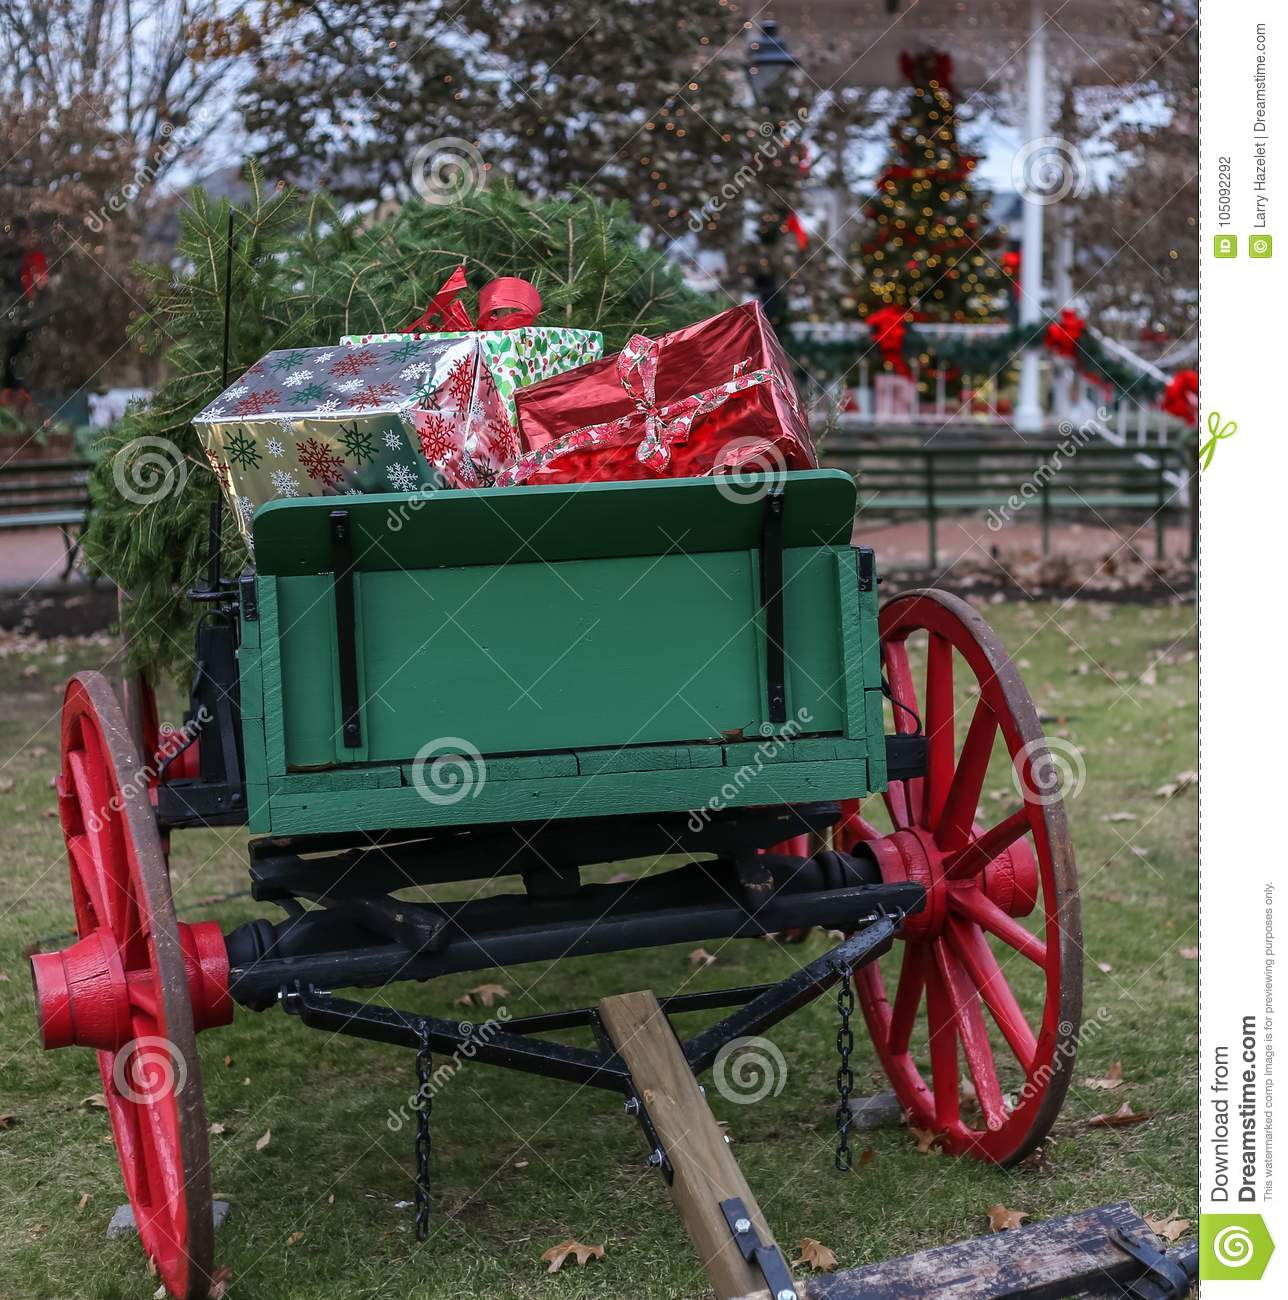 657 Christmas Wagon Photos Free Royalty Free Stock Photos From Dreamstime